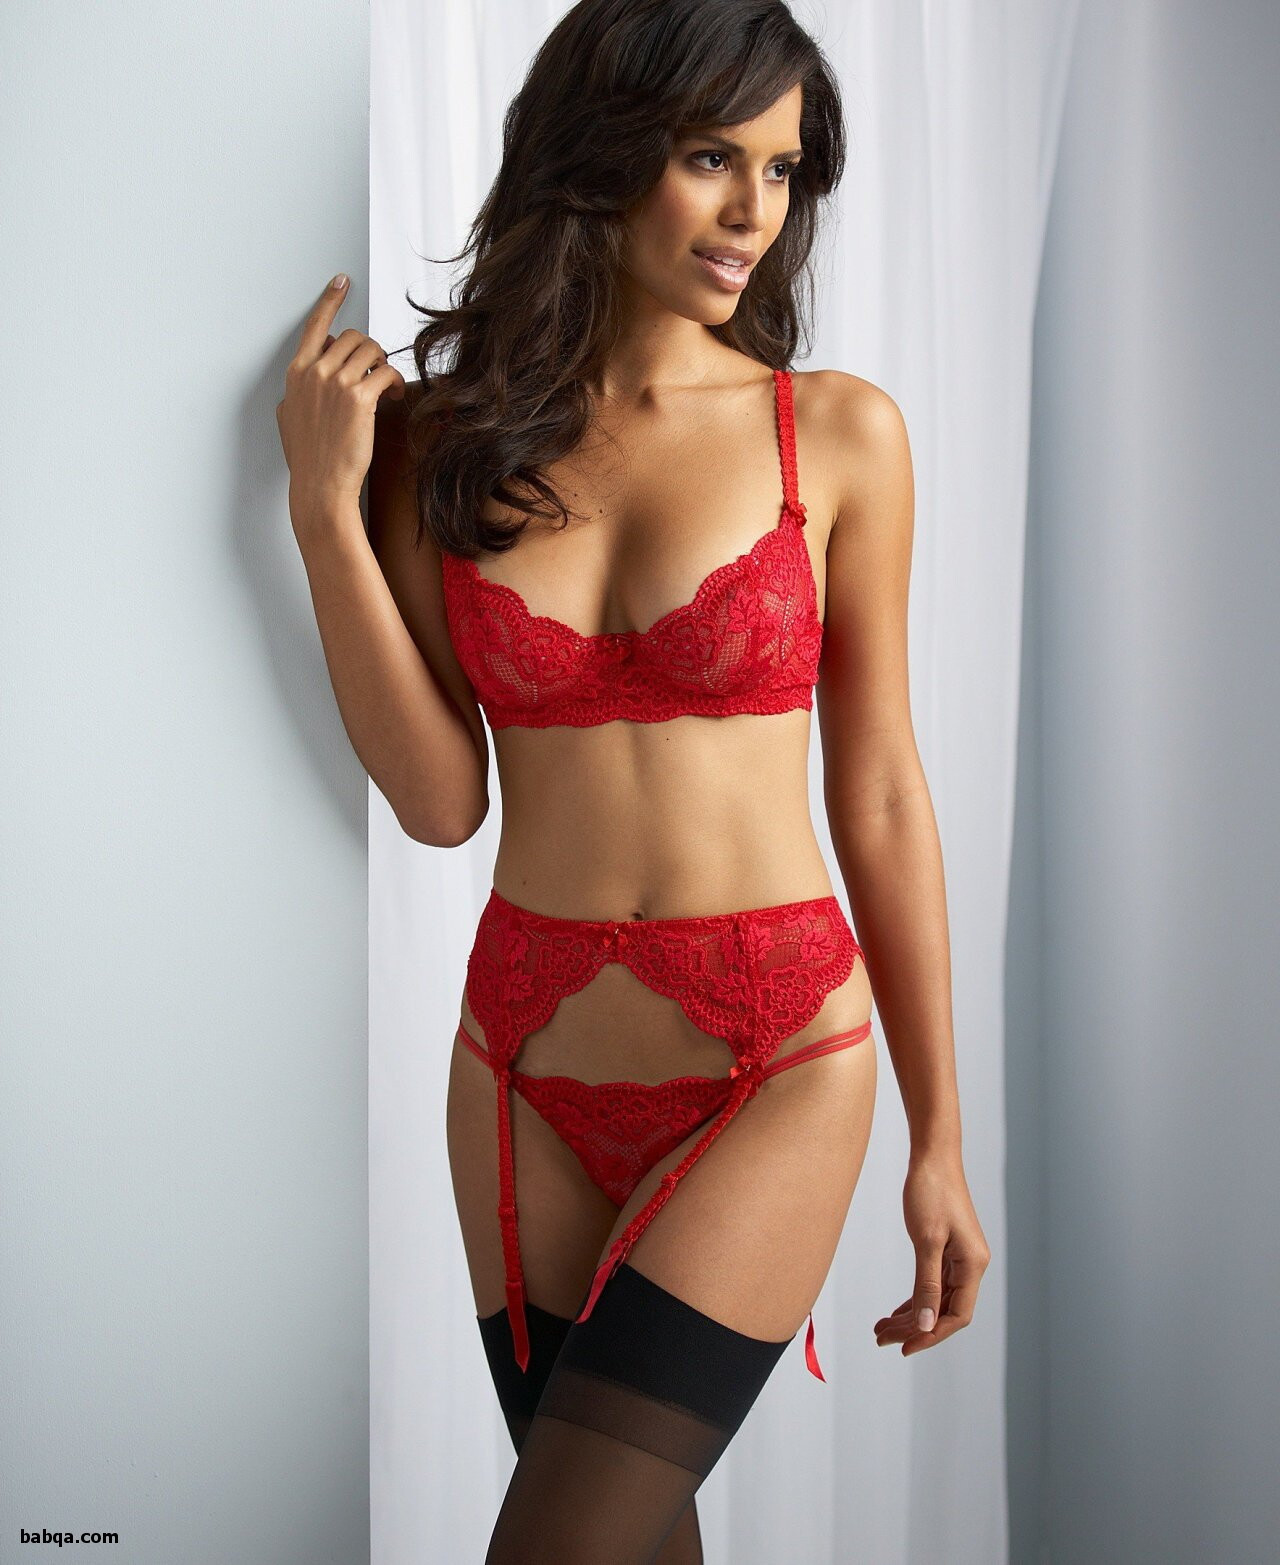 images of women in sexy lingerie and really long thigh high socks